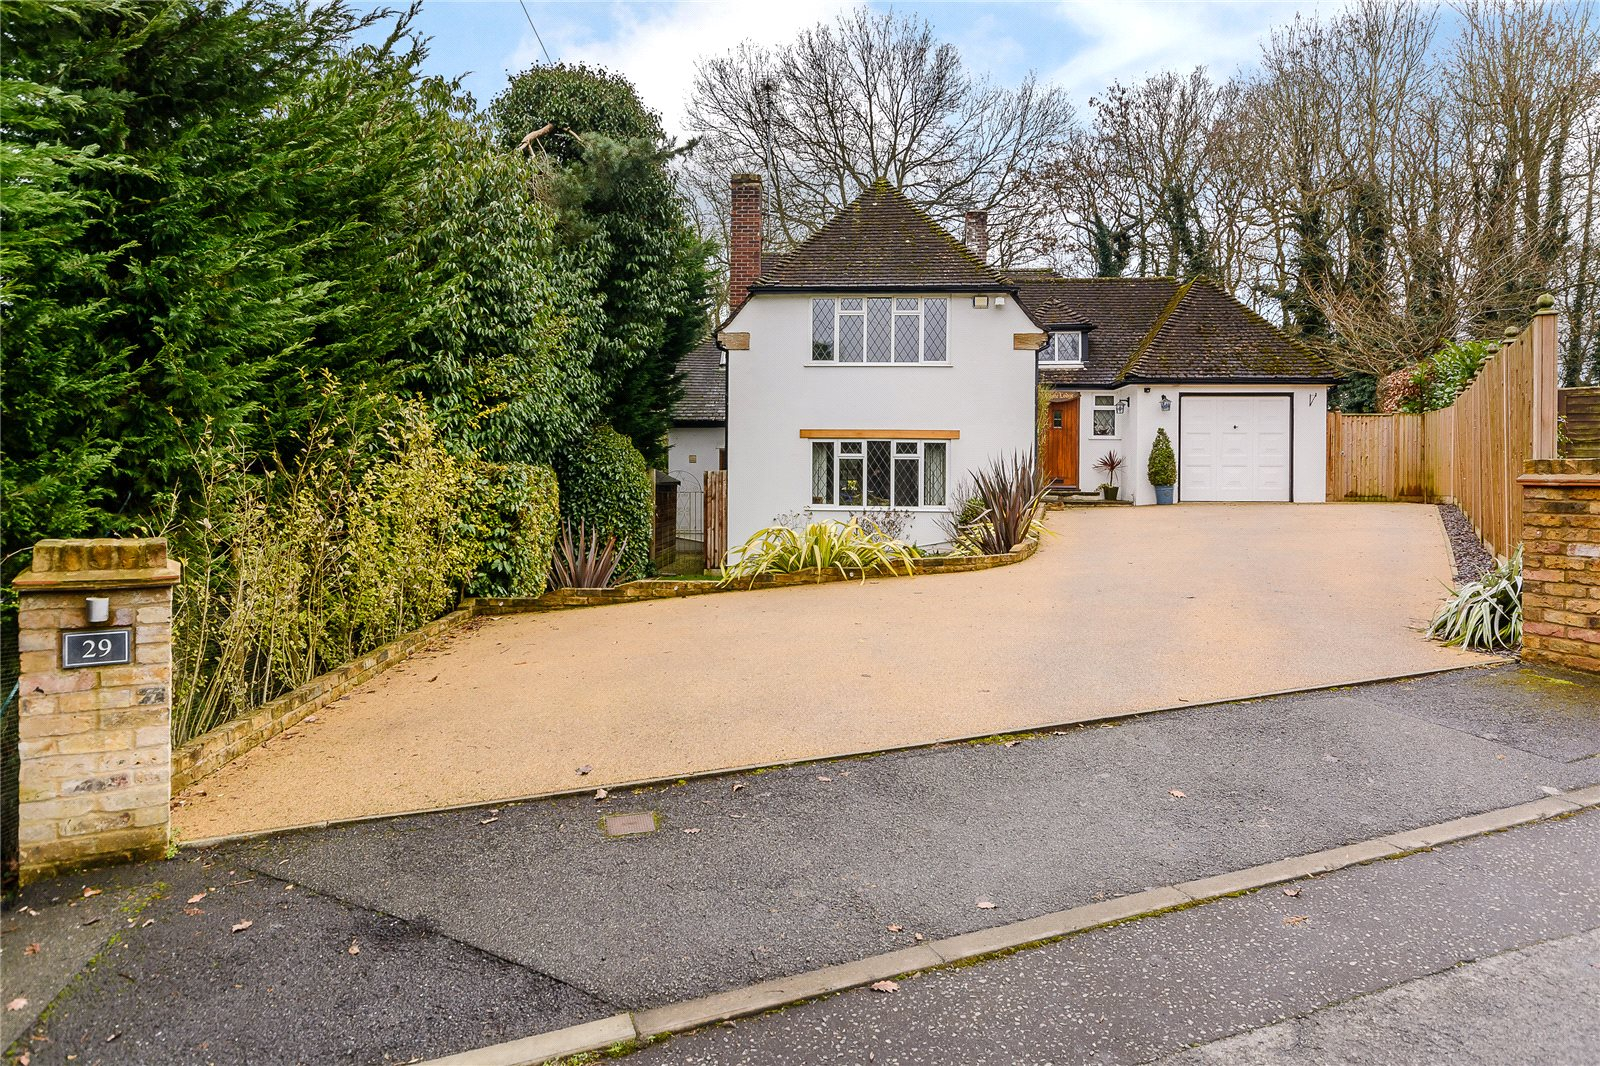 独户住宅 为 销售 在 Howards Wood Drive, Gerrards Cross, Buckinghamshire, SL9 Gerrards Cross, 英格兰